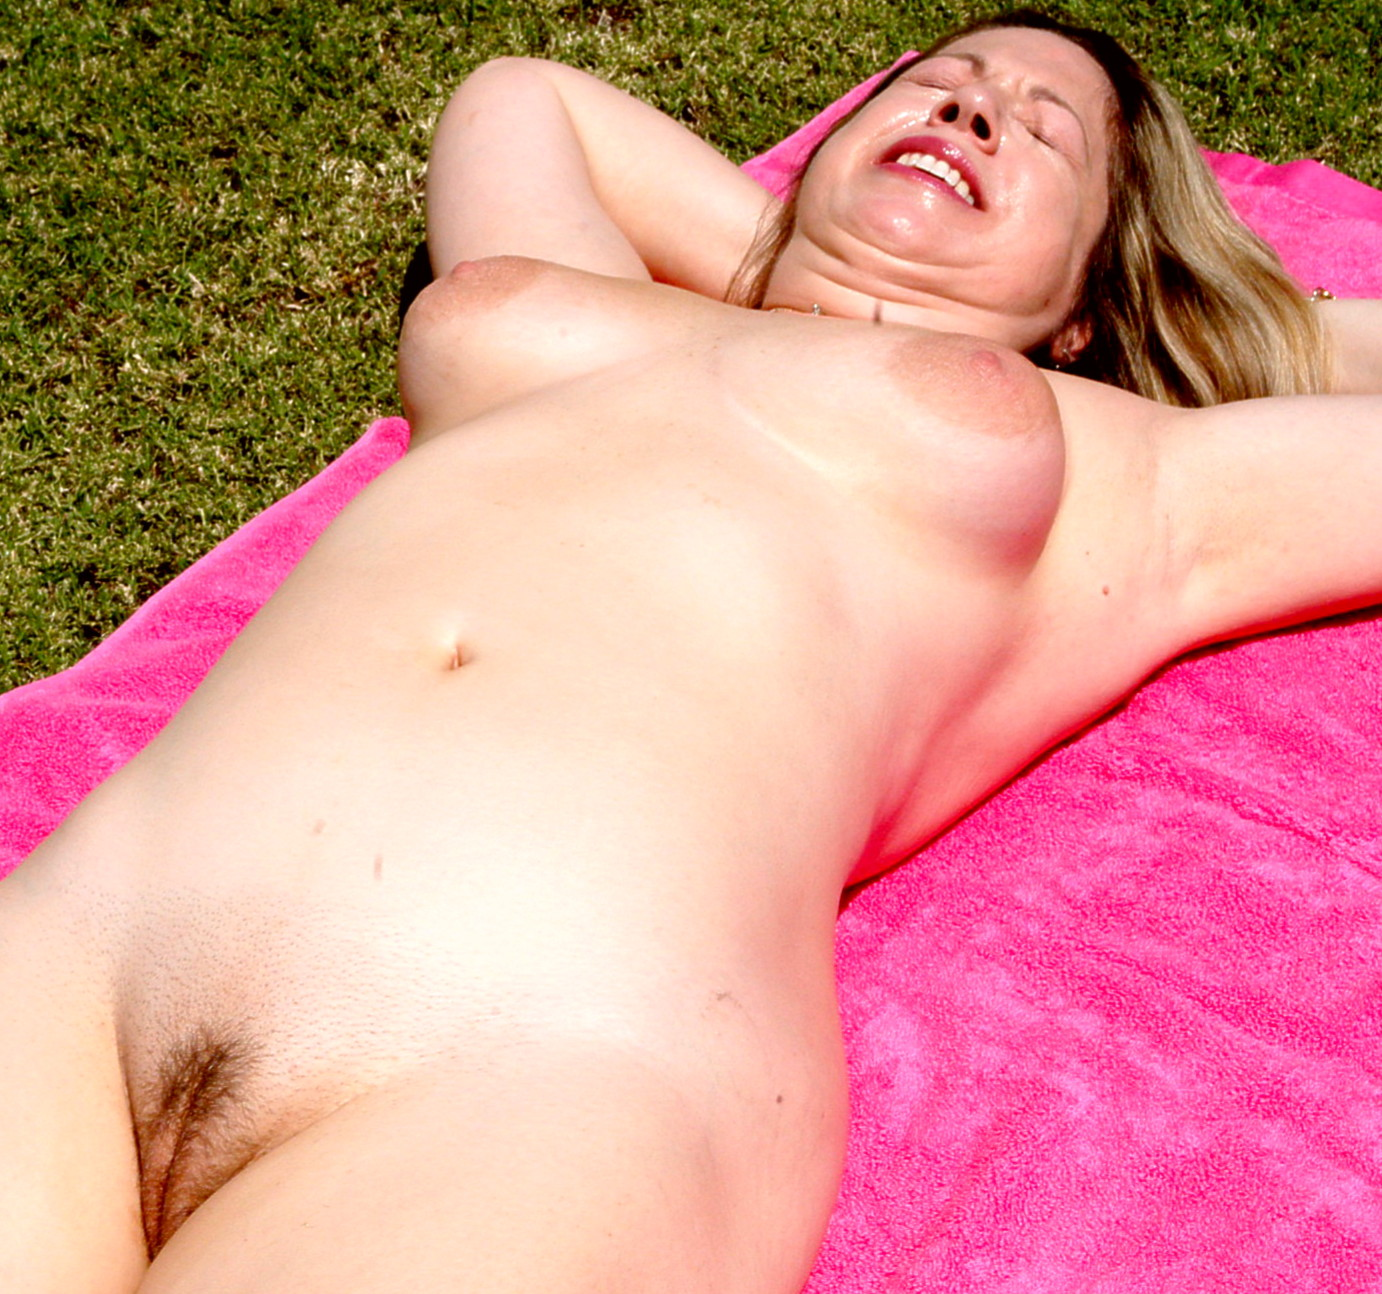 We have fantastic nude sunbathing weather at Terra Cotta Inn in sunny Palm ...